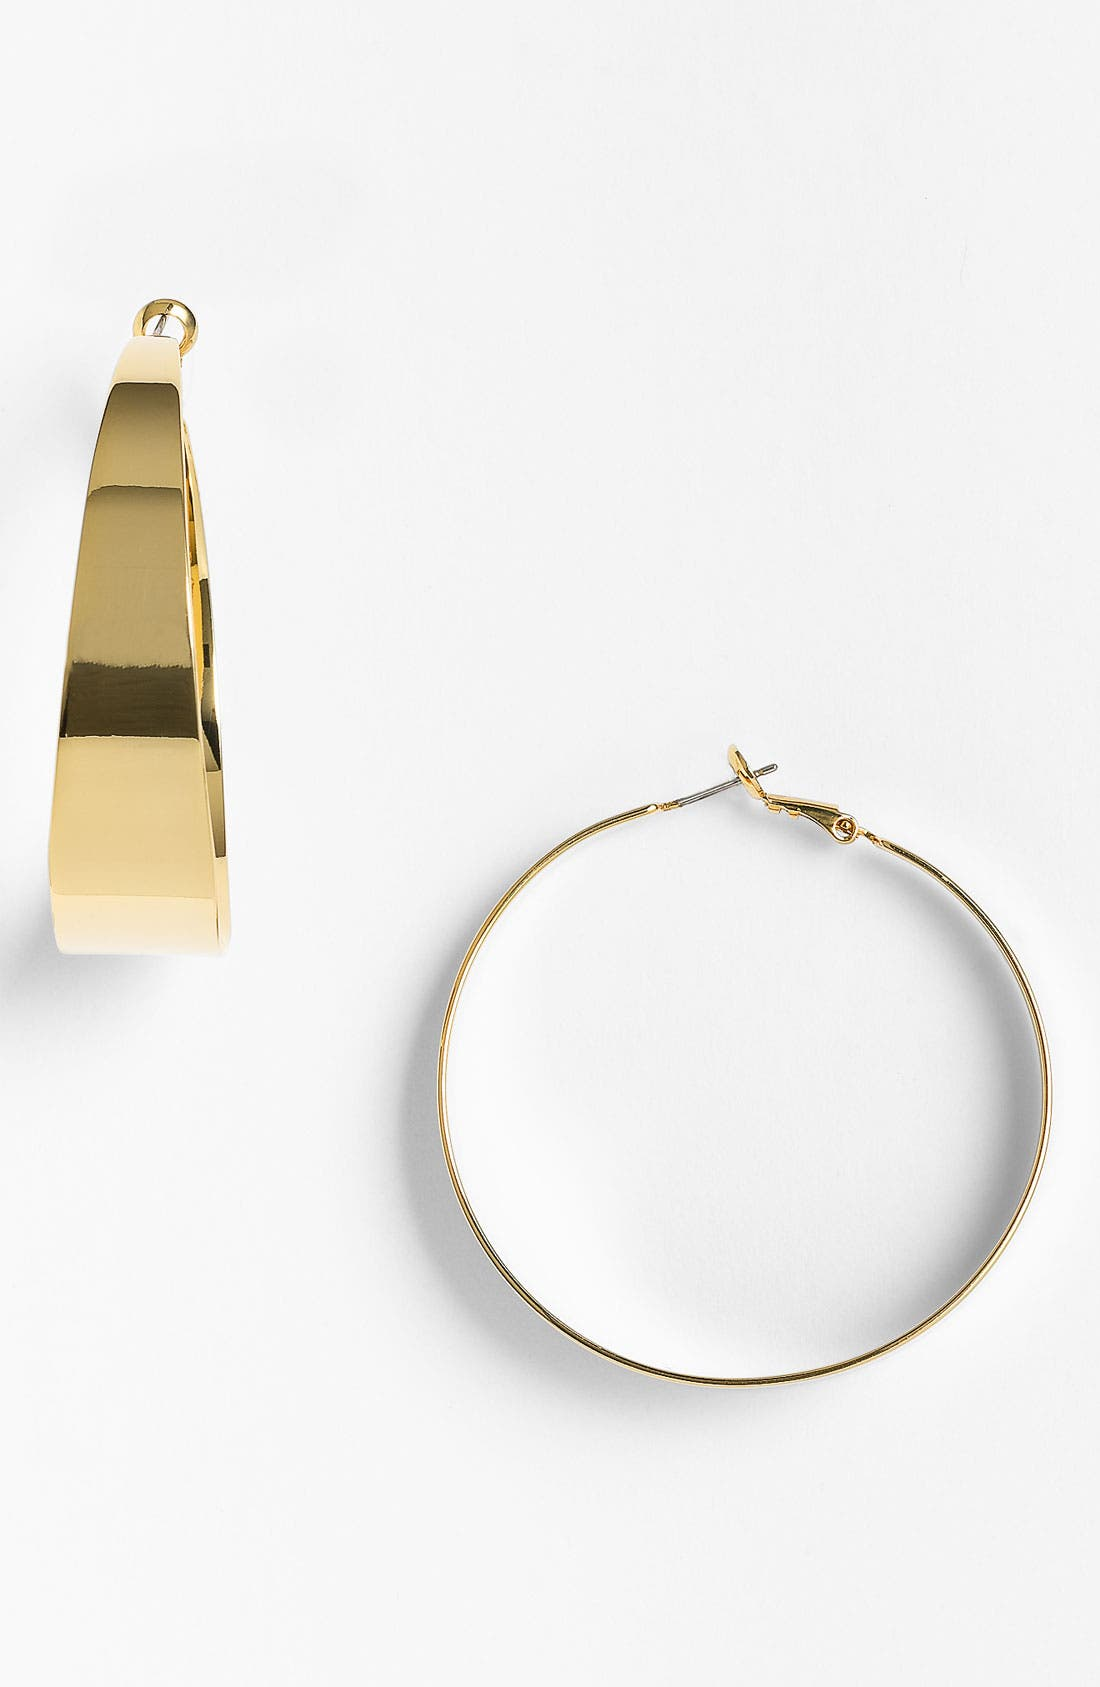 Alternate Image 1 Selected - Vince Camuto 'Basics' Tapered Hoop Earrings